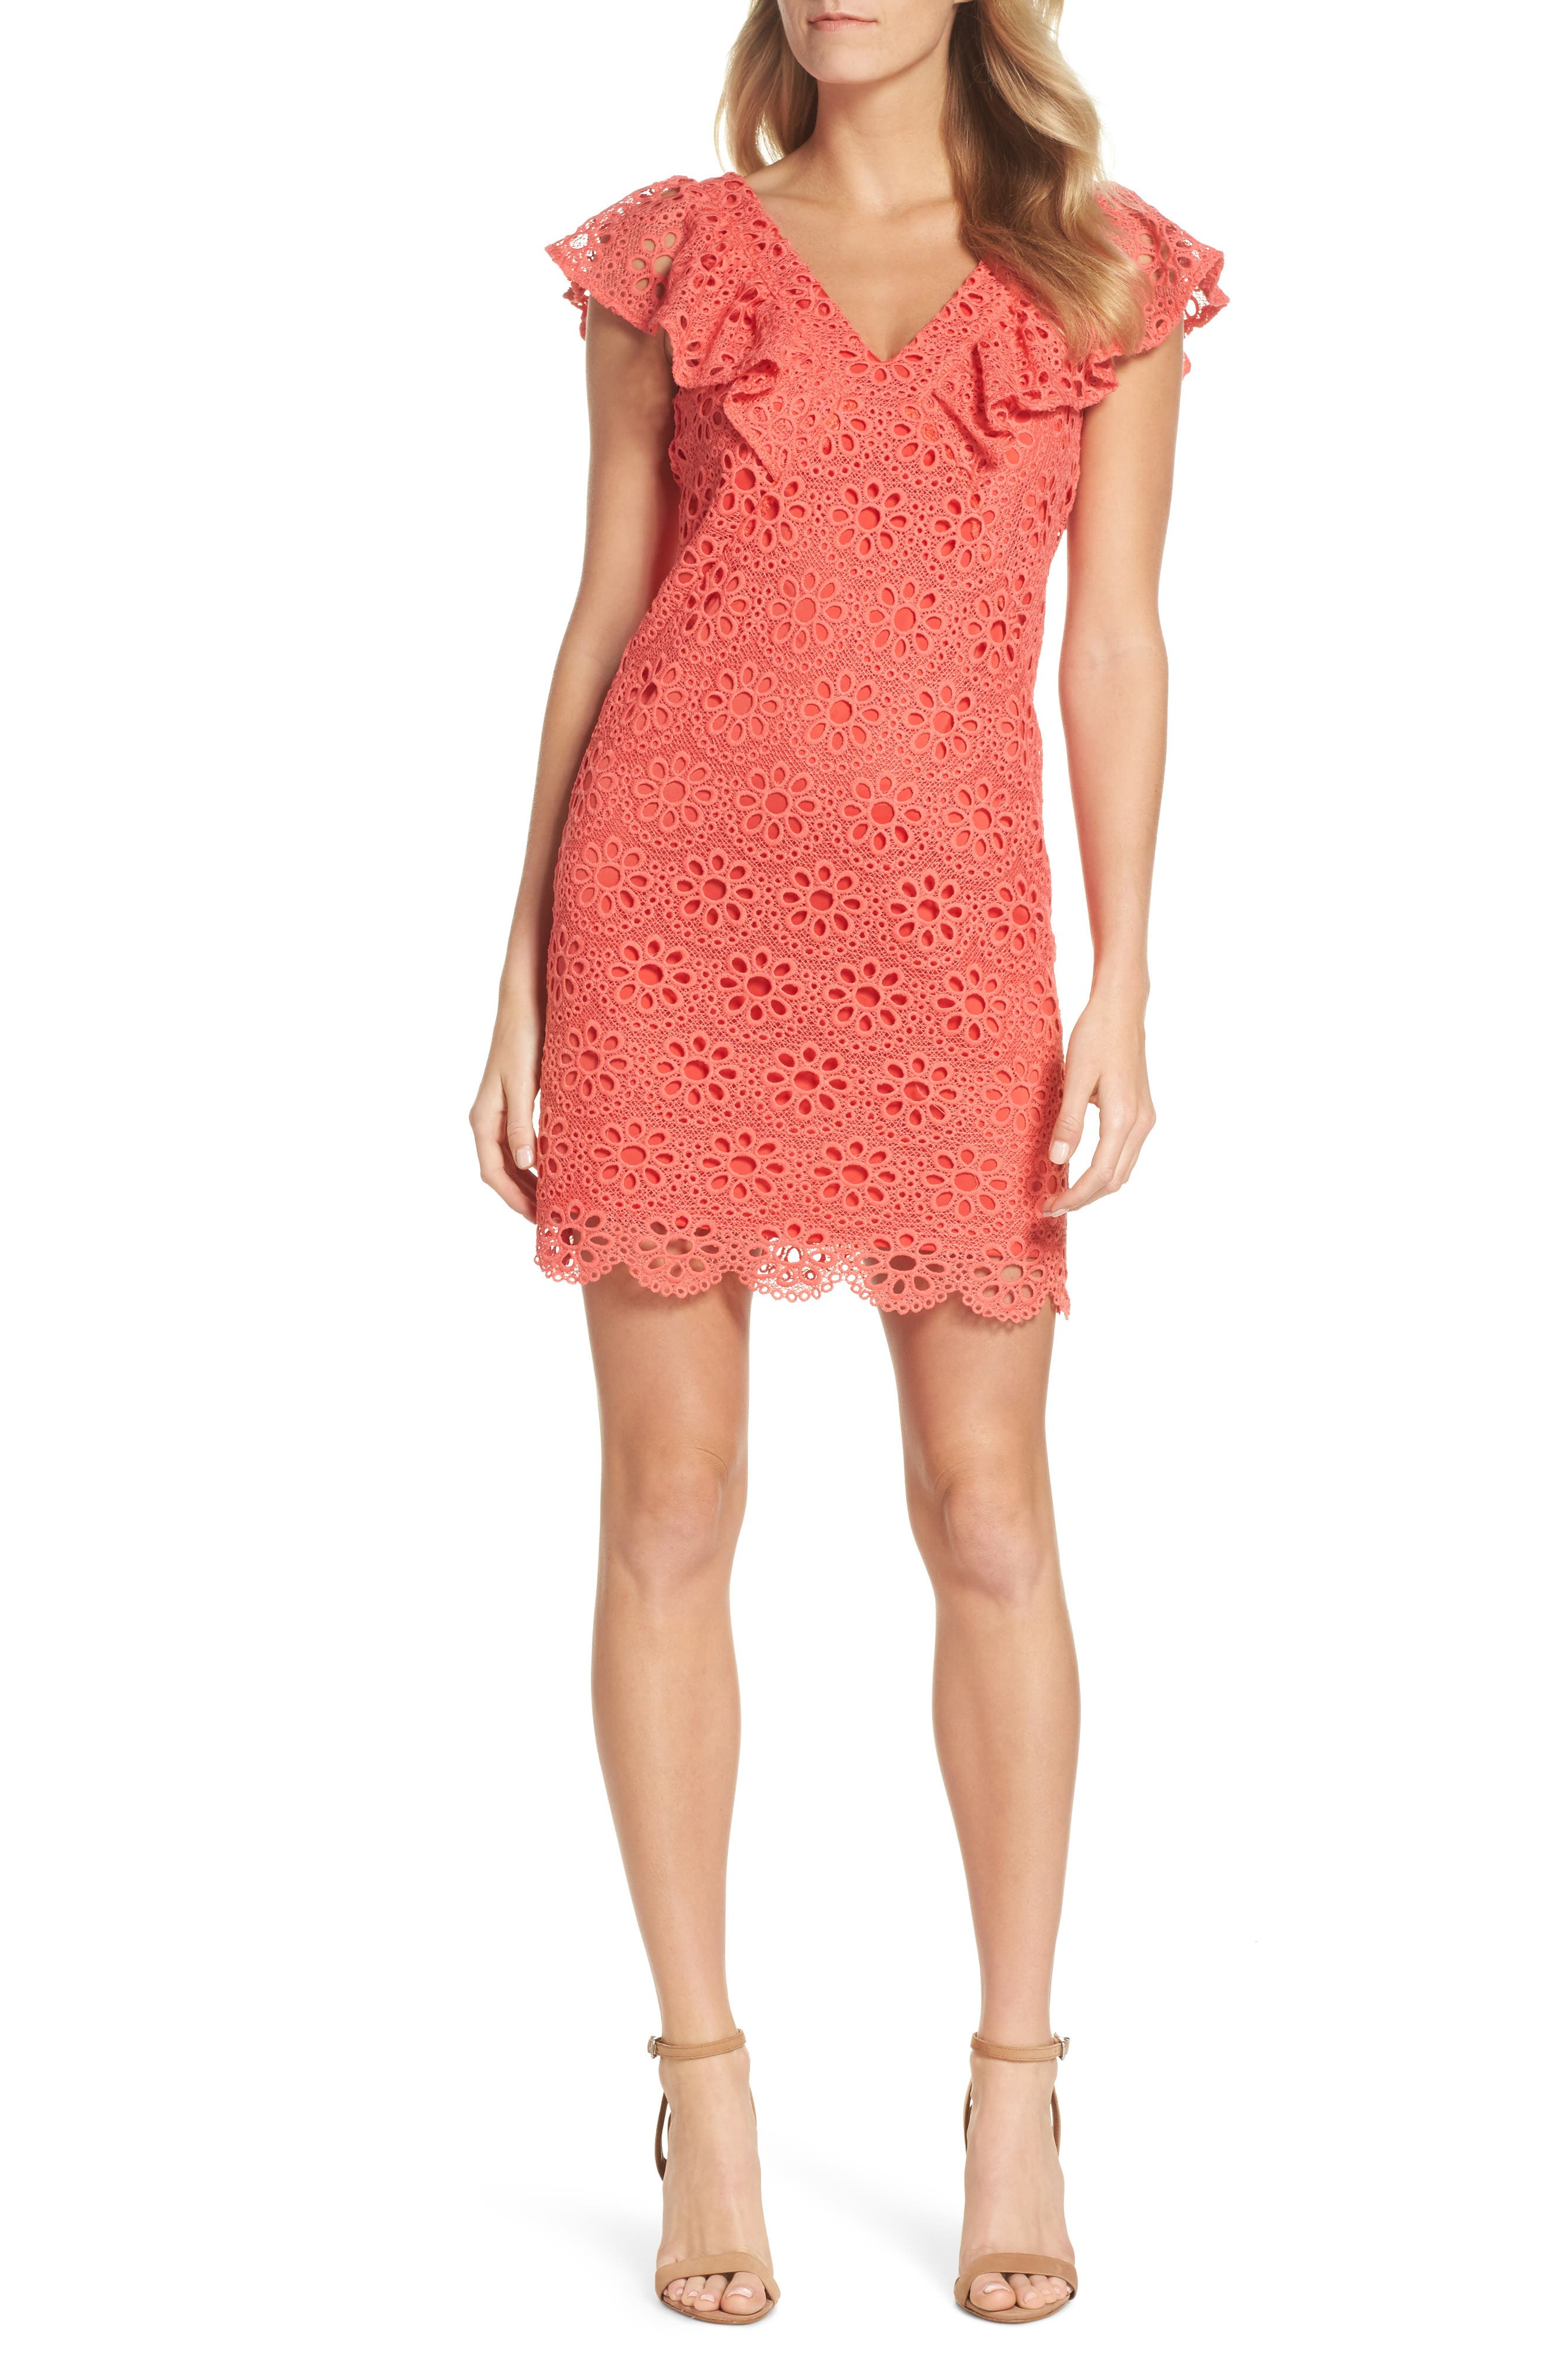 Neriah Eyelet Embroidered Dress,                             Main thumbnail 1, color,                             CORAL LILLY